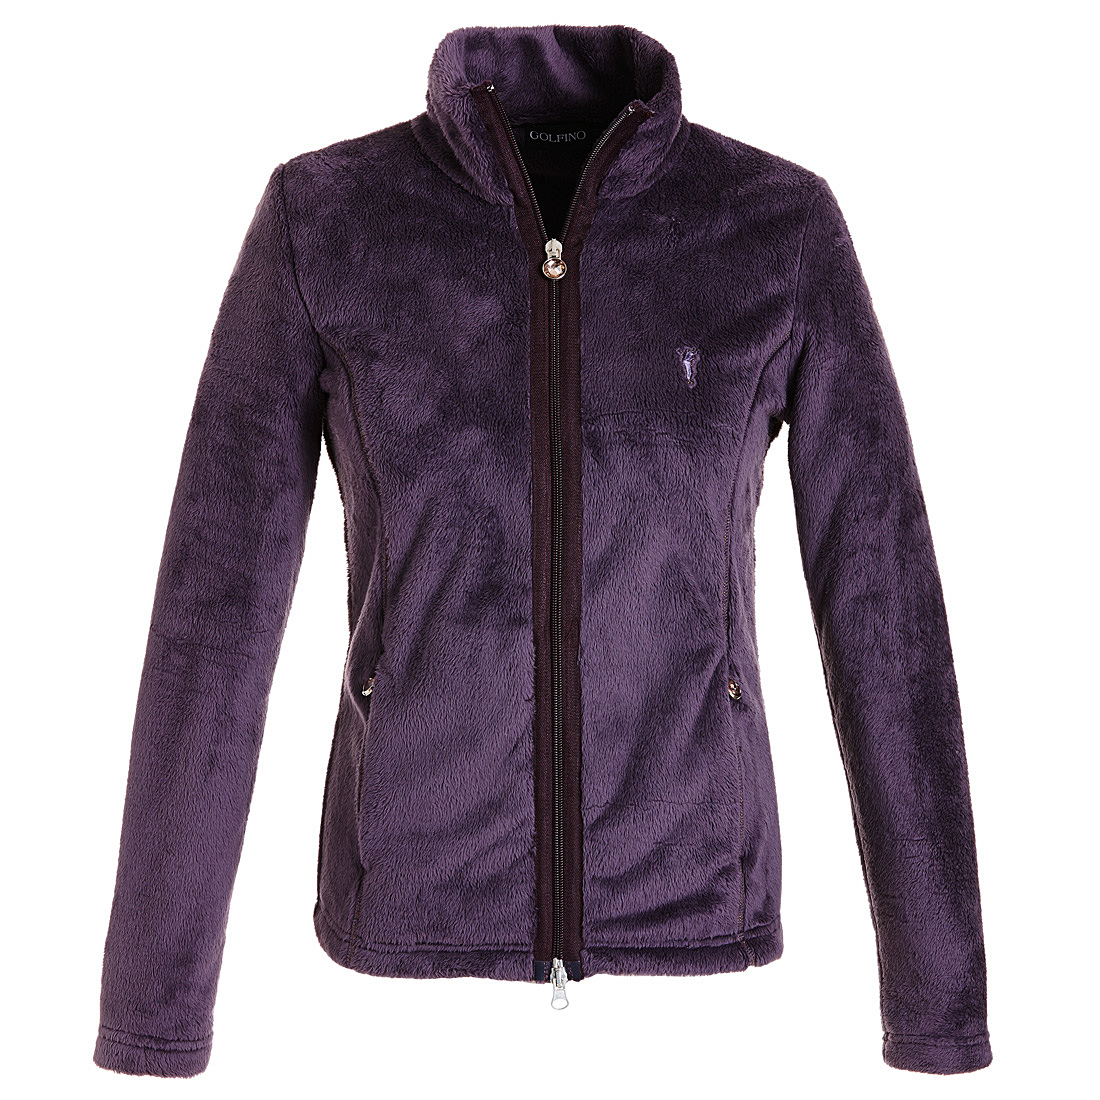 Flauschige Fleece Jacke Violet